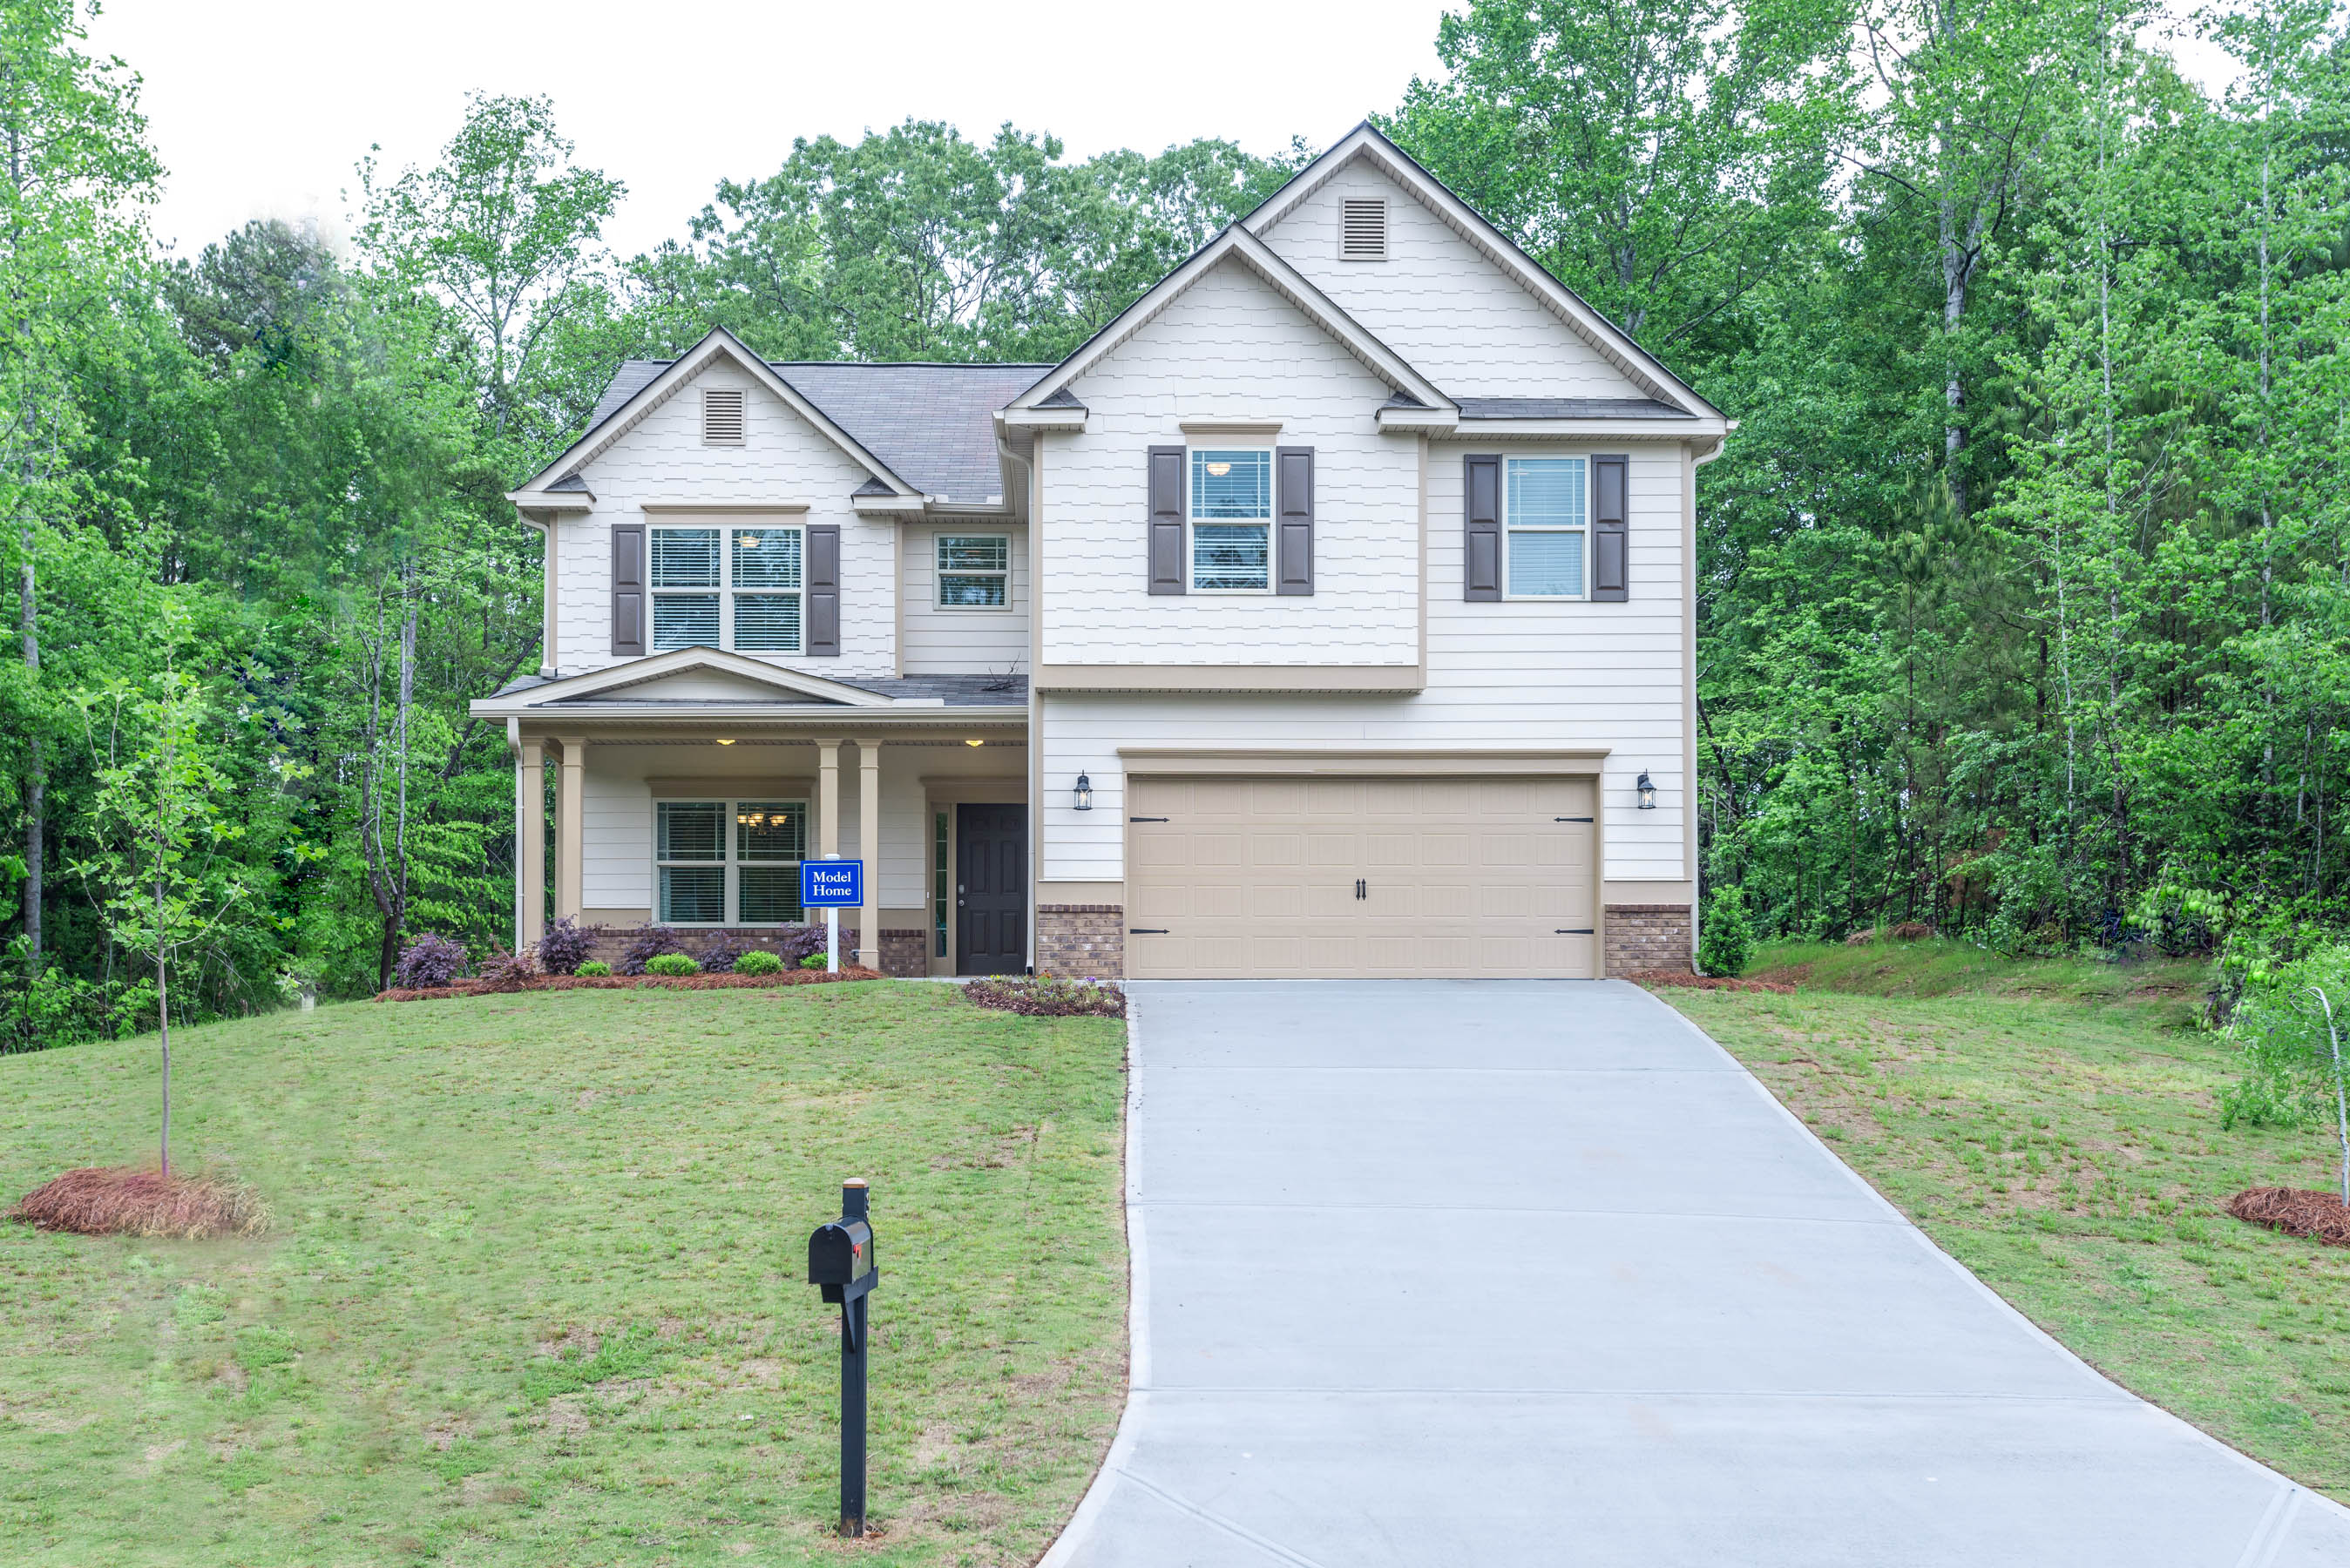 New homes available in hiram at gorham gates kerley for Family home builders